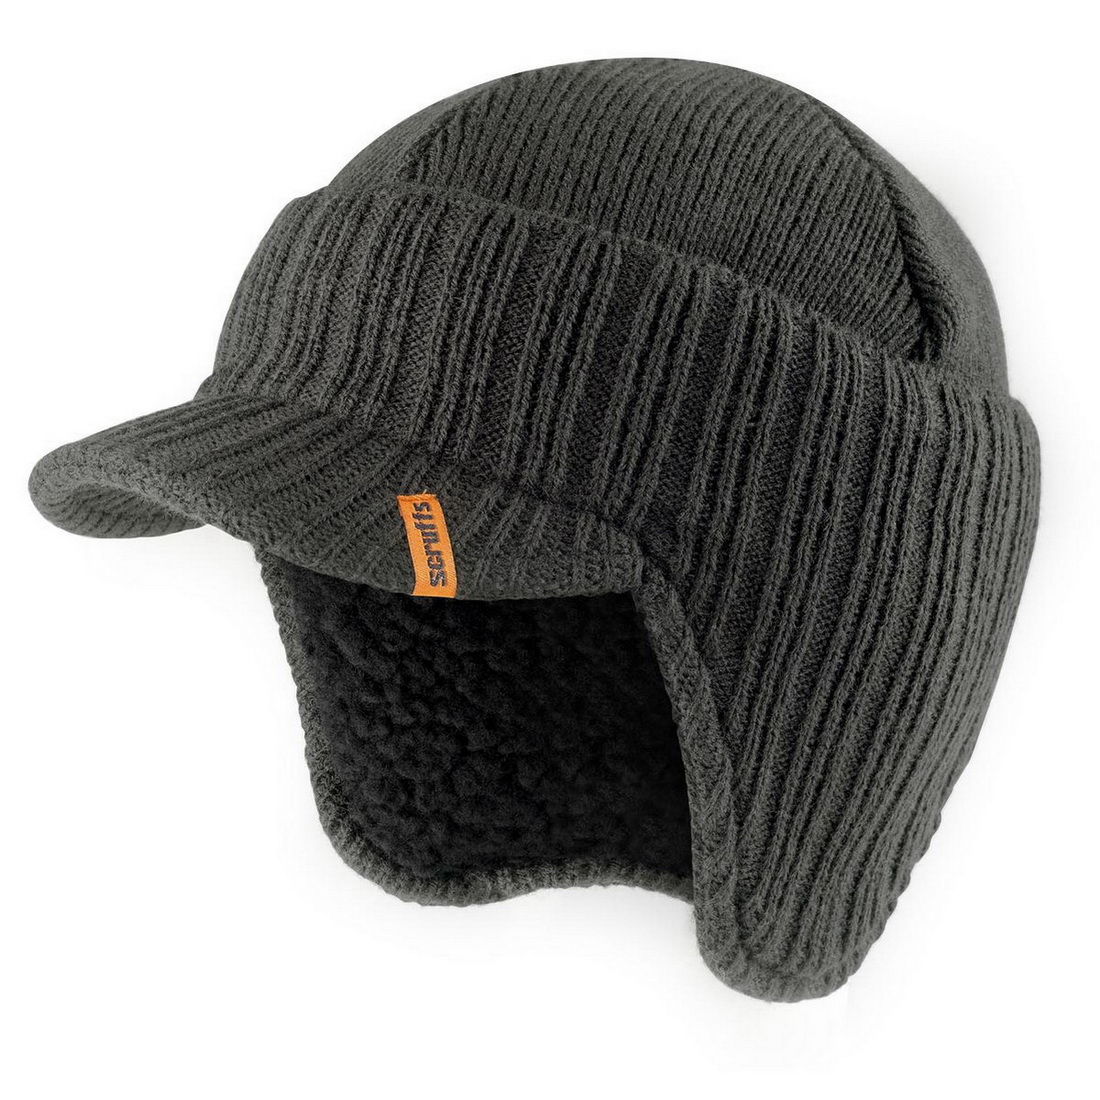 Warm Styled Wool Peaked Beanie Hat One Size Graphite T54305